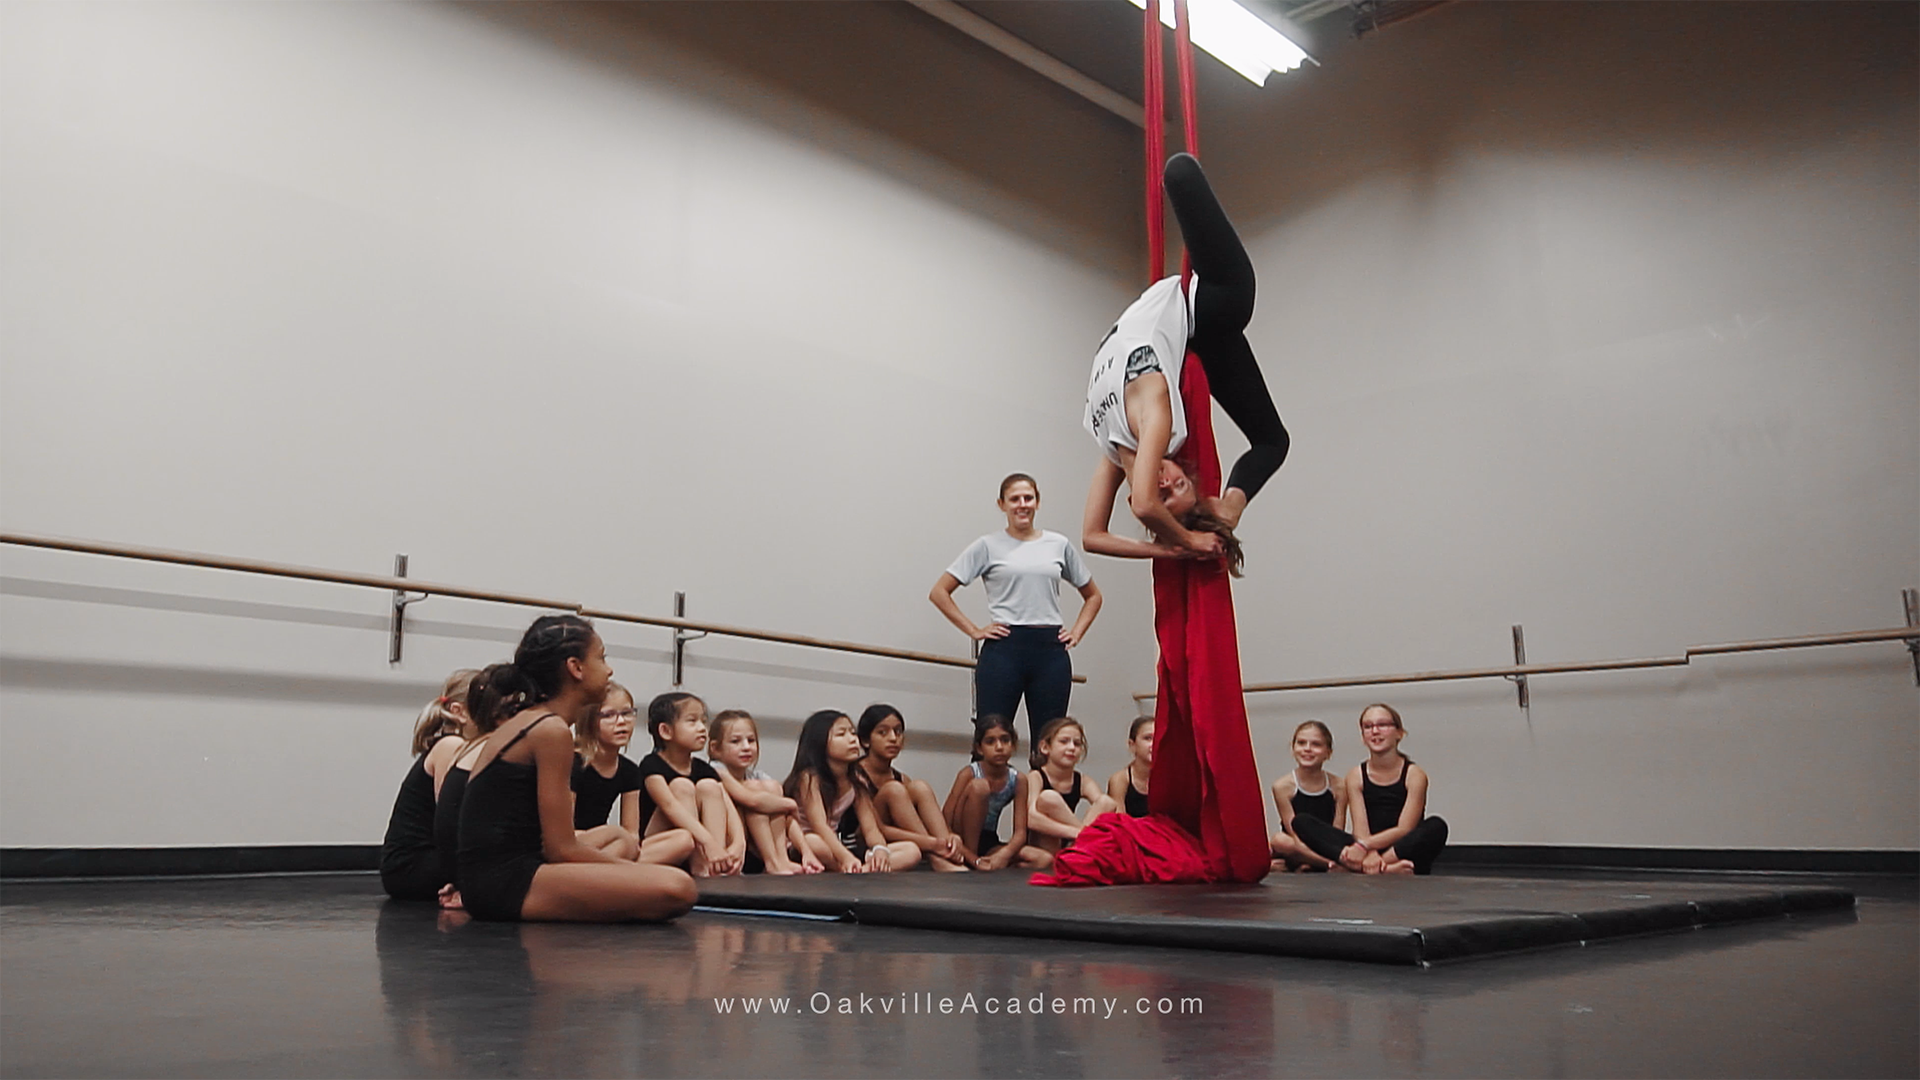 acro-camp-oakville-academ-for-the-arts-background